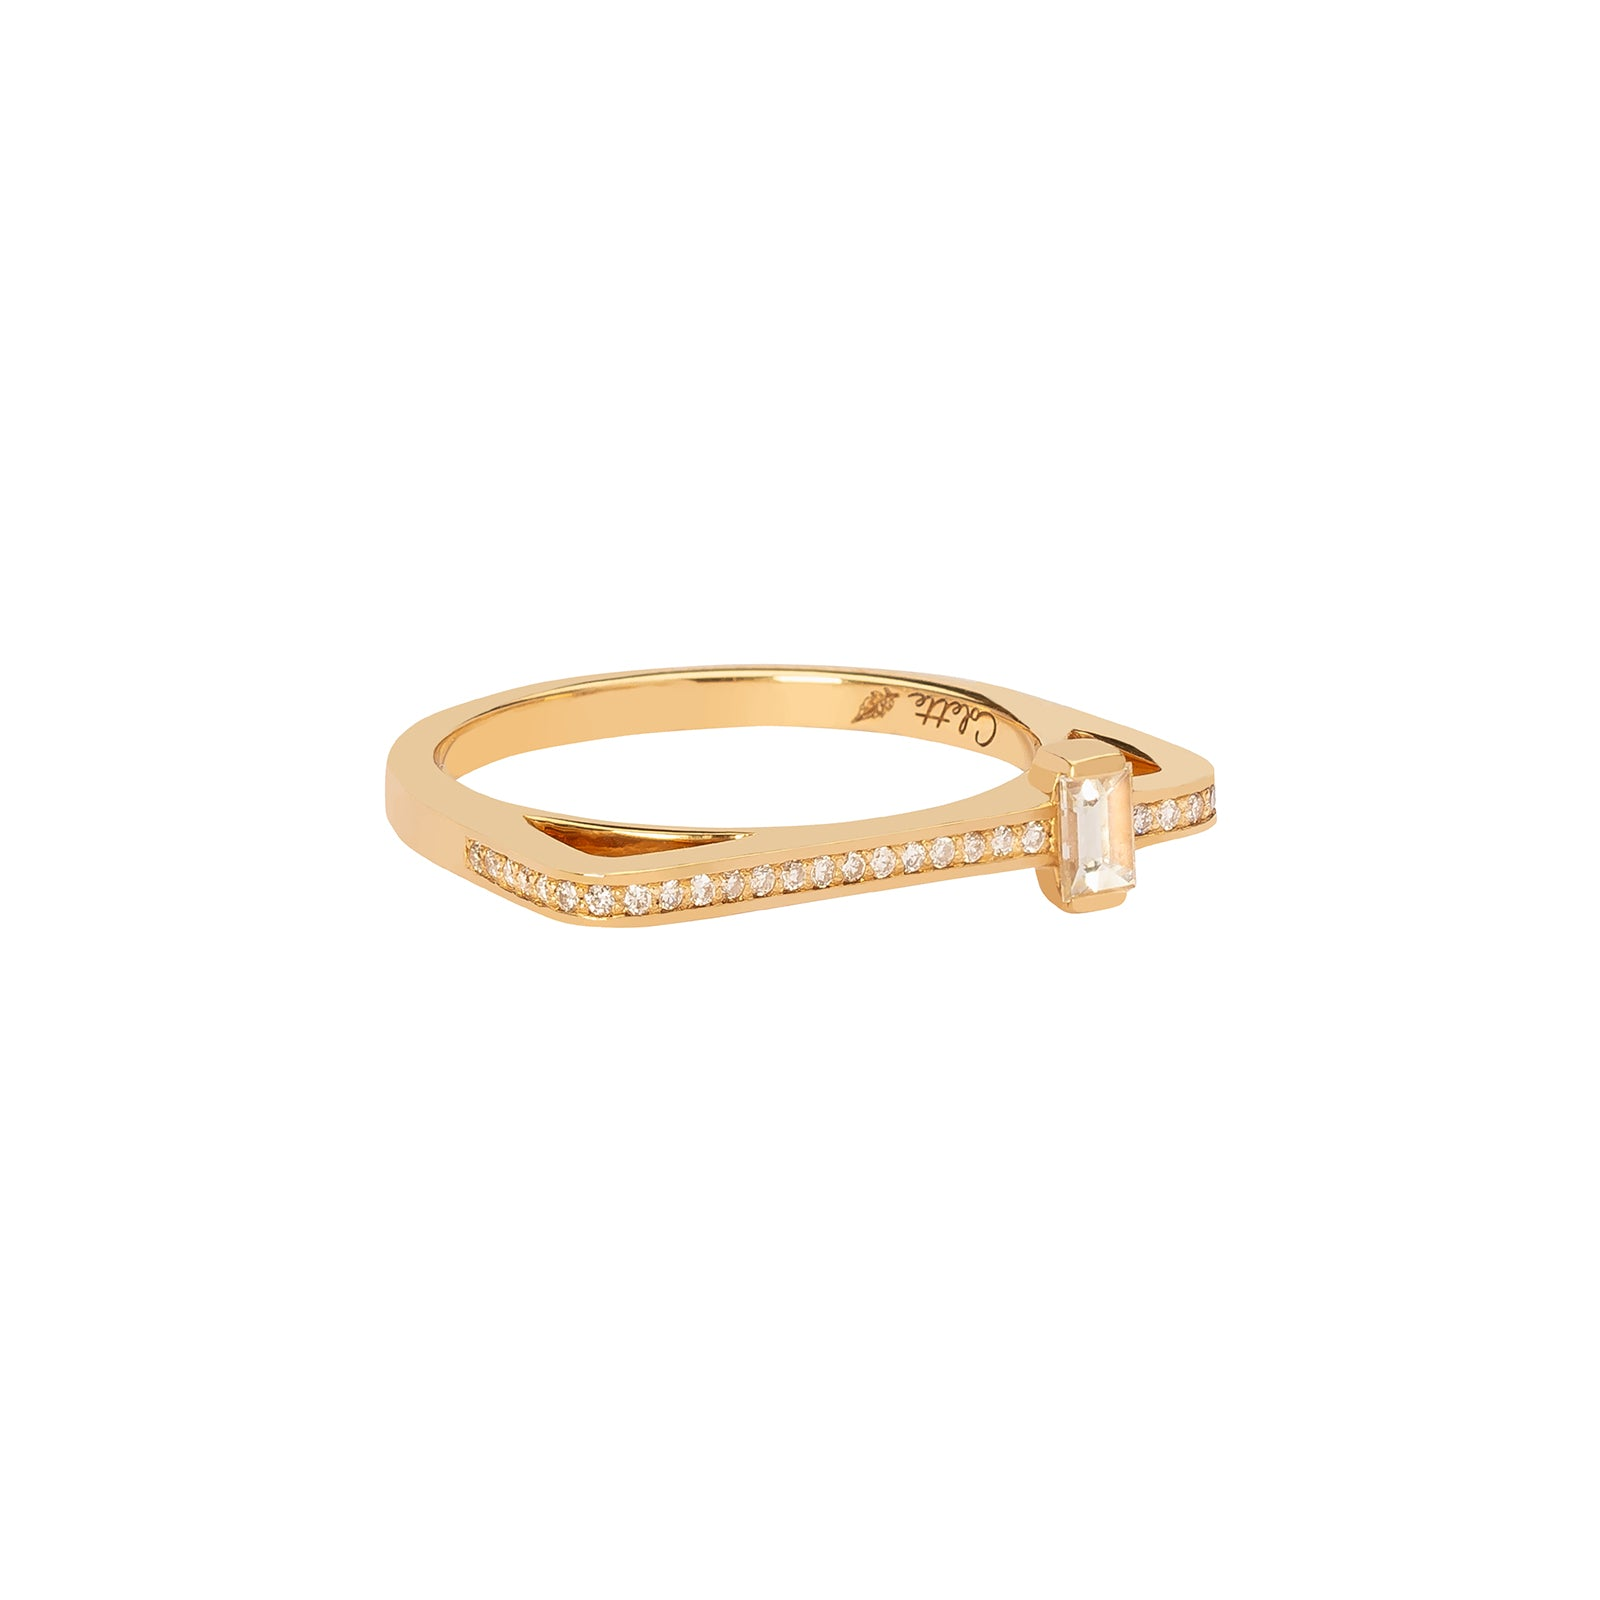 Colette Pave Diamond & Baguette Ring - Yellow Gold - Rings - Broken English Jewelry